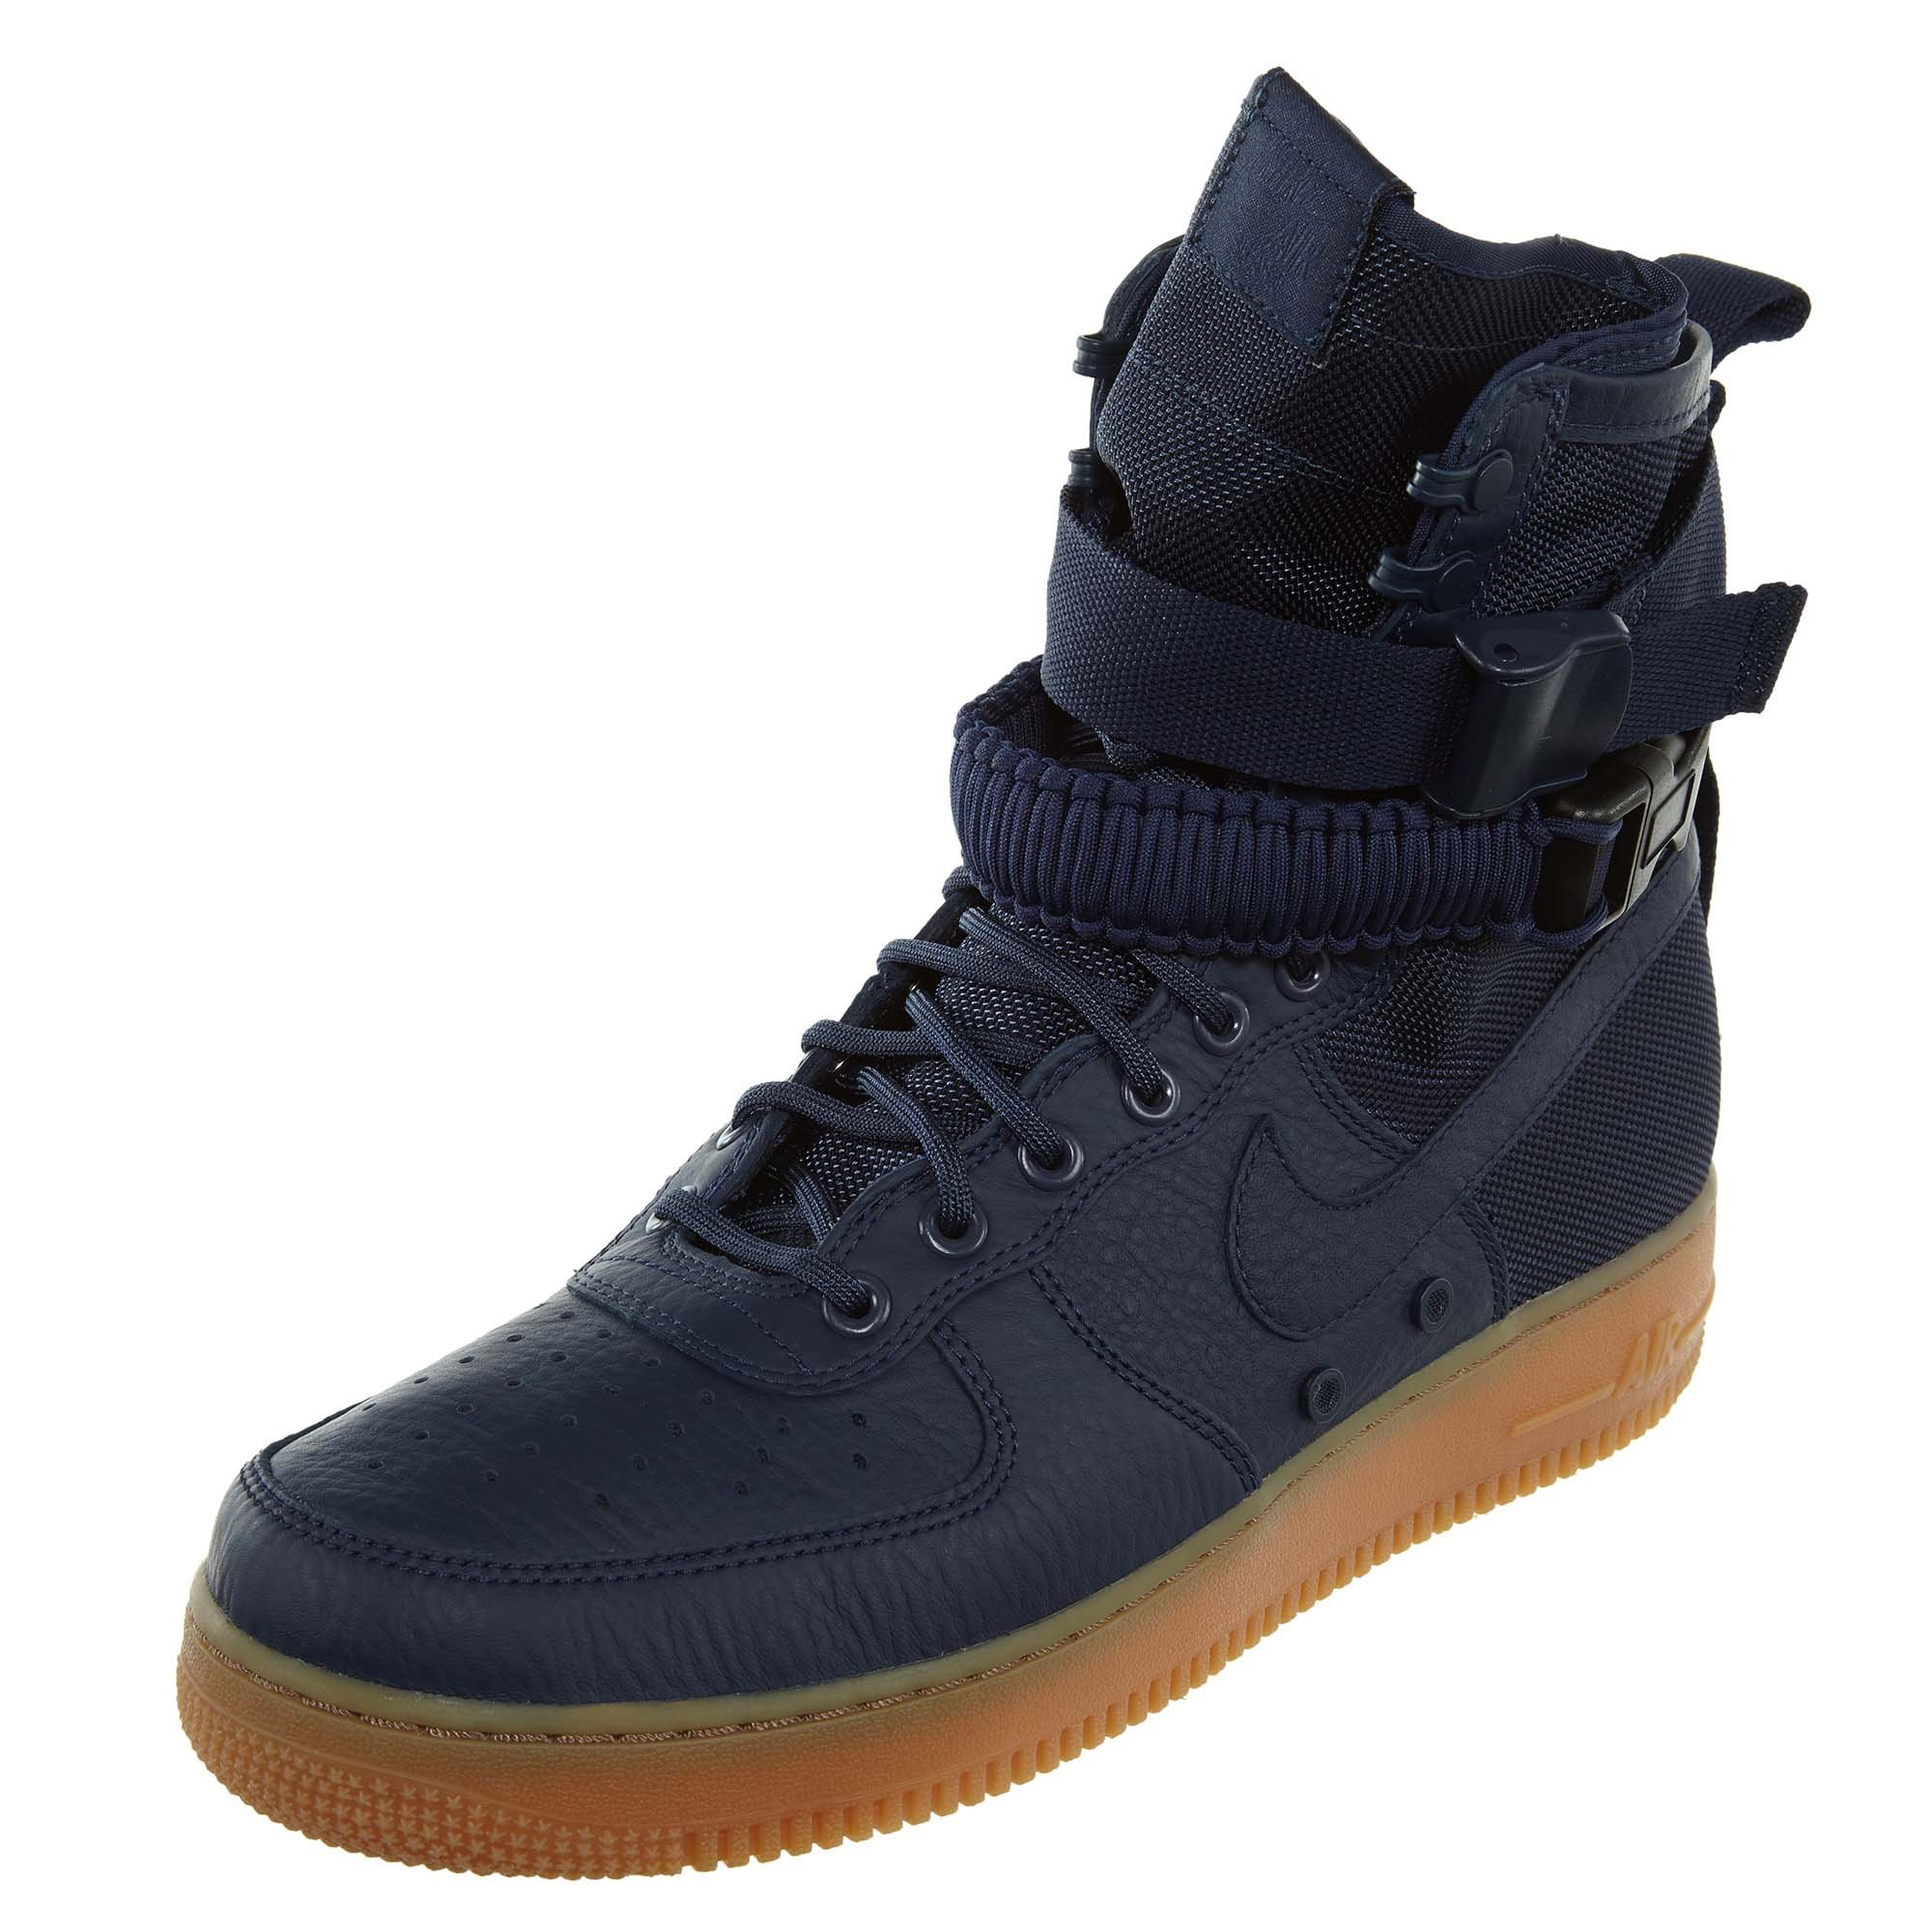 best website d27f7 c6ddd Galleon - Nike SF Air Force 1 Men s Boots Midnight Navy Midnight Navy  864024-400 (8 D(M) US)